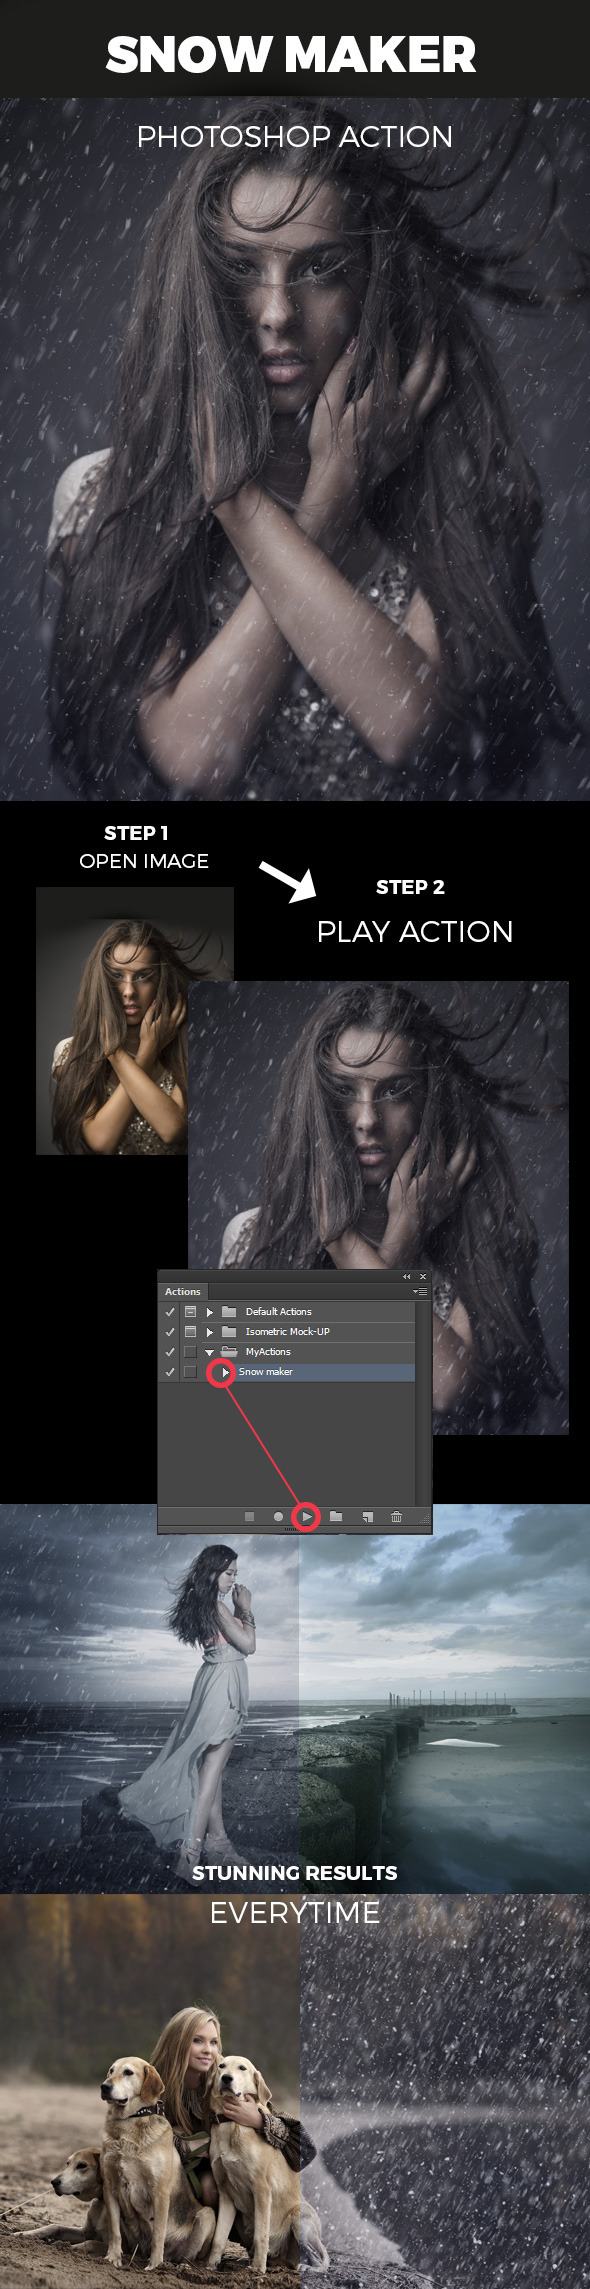 Snow Maker Photoshop Action - Photo Effects Actions